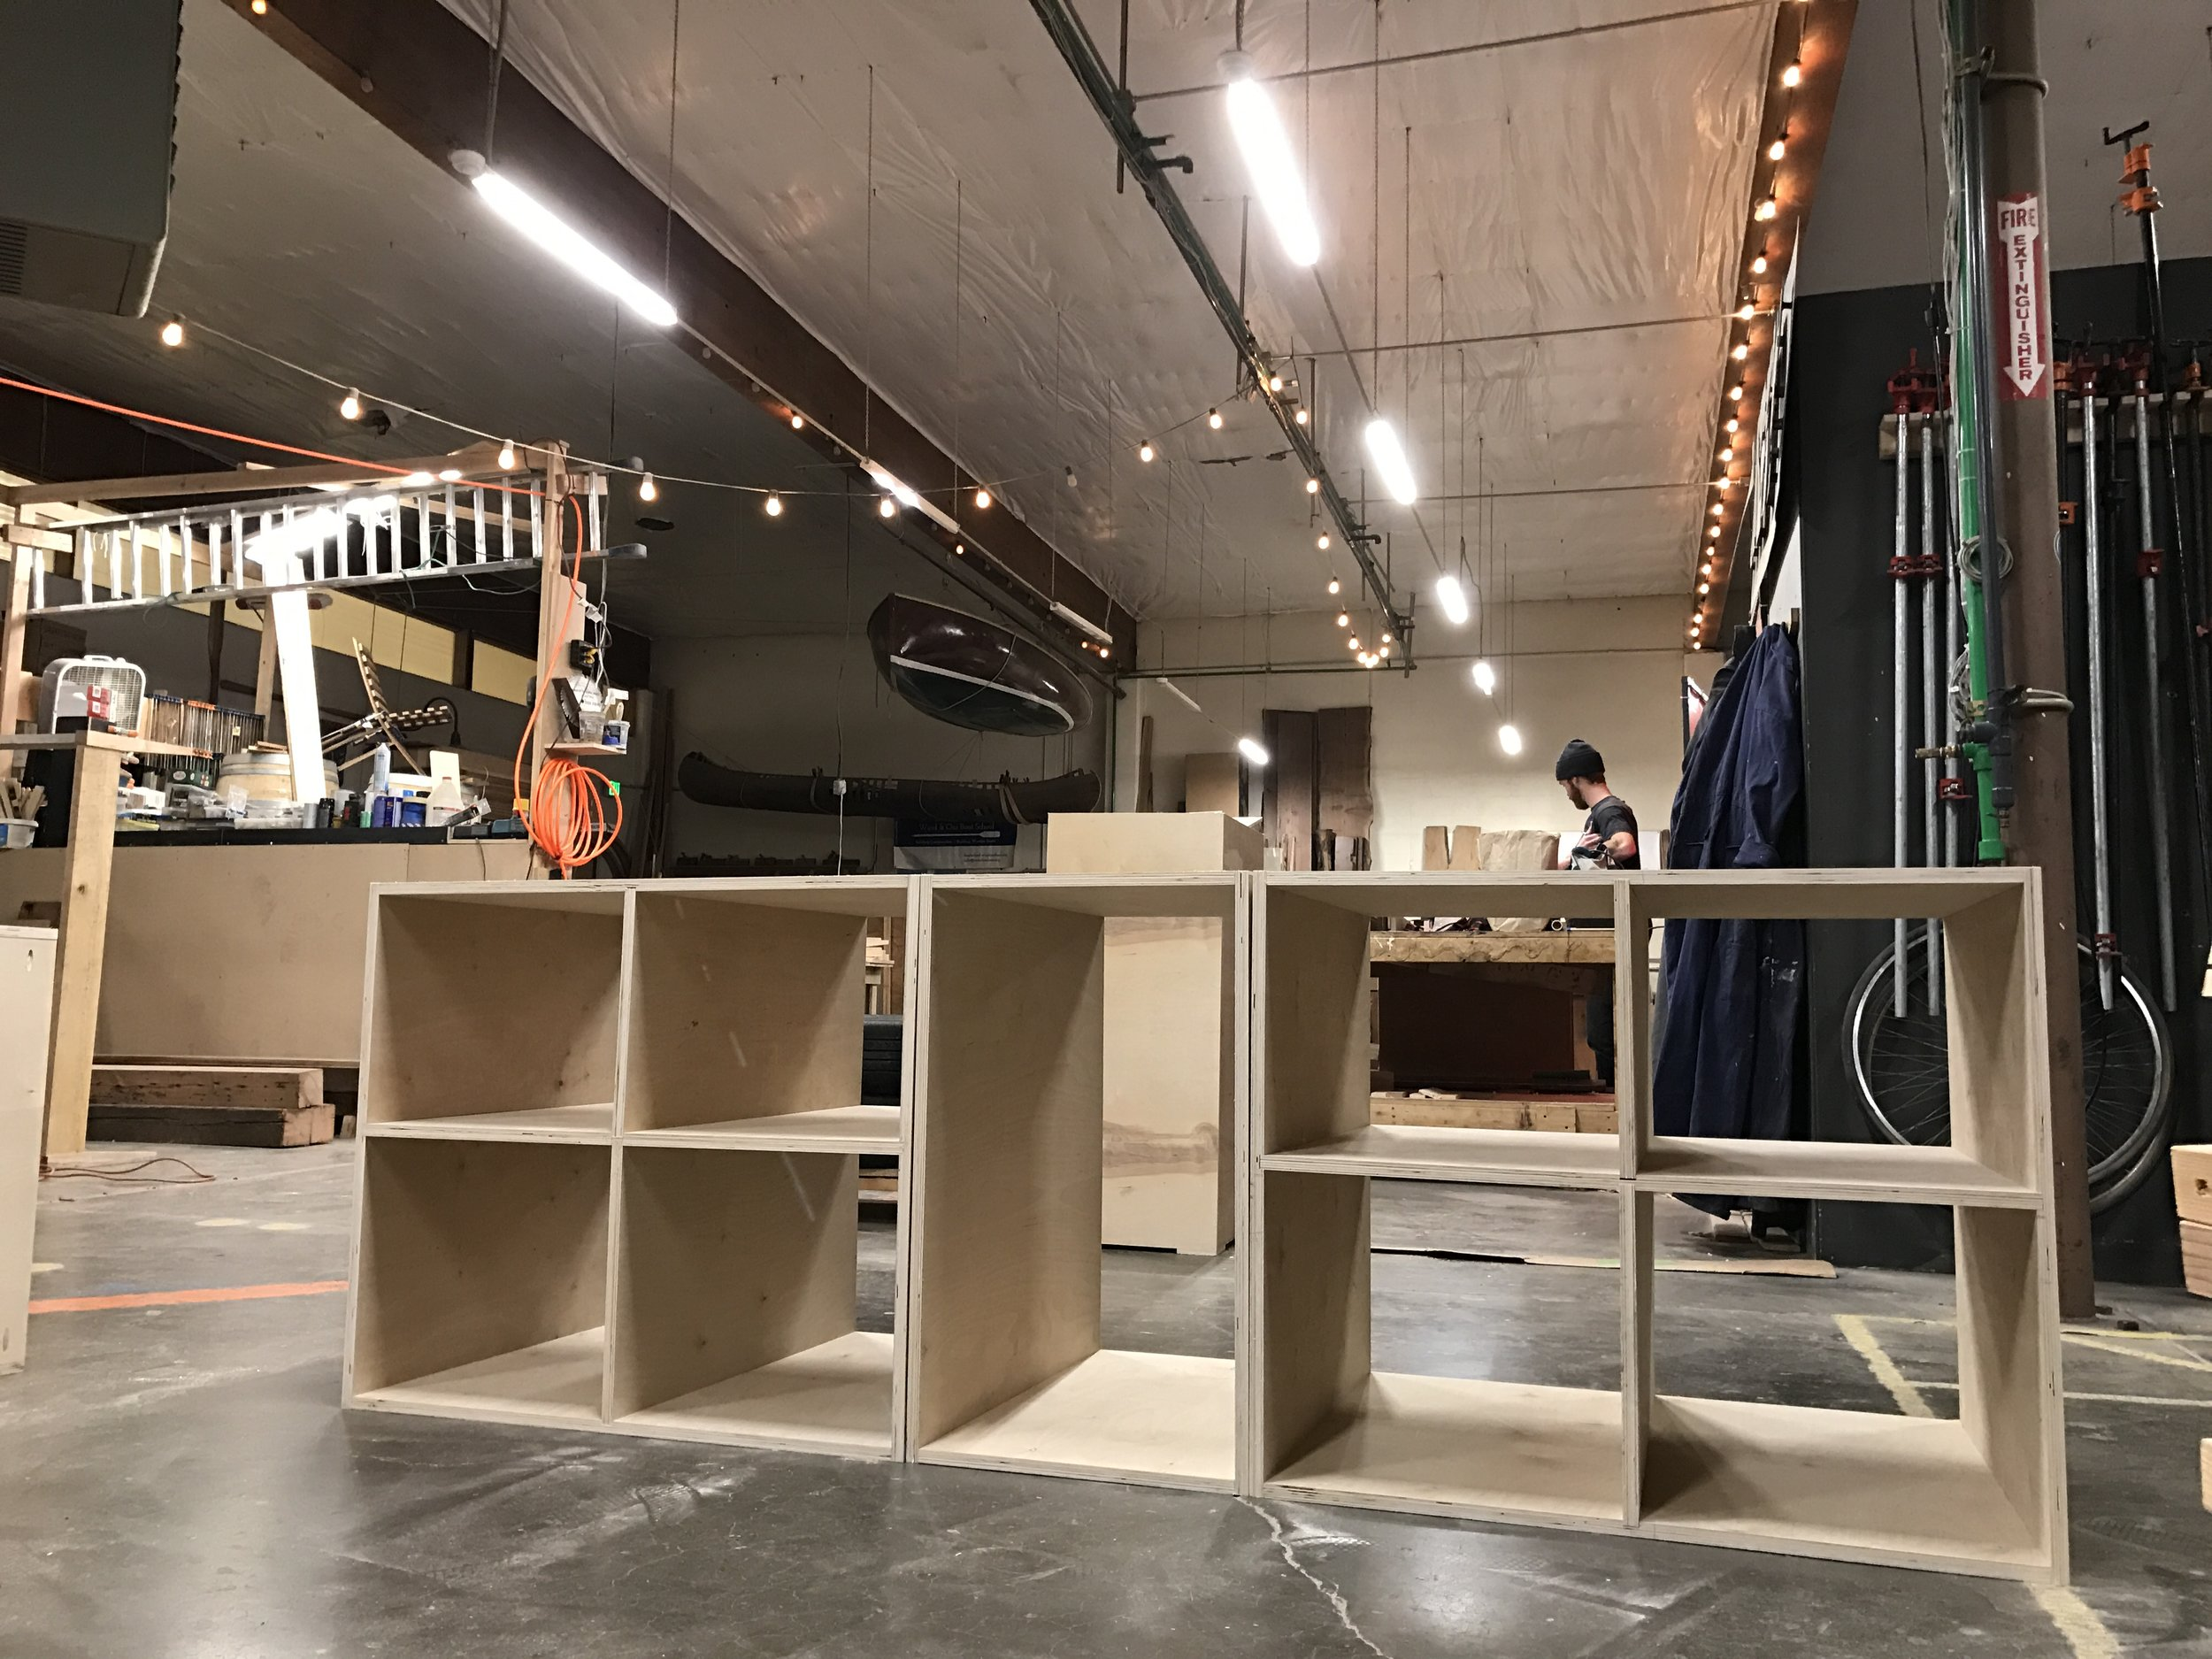 A little preview of our cabinetry we made at ADX.